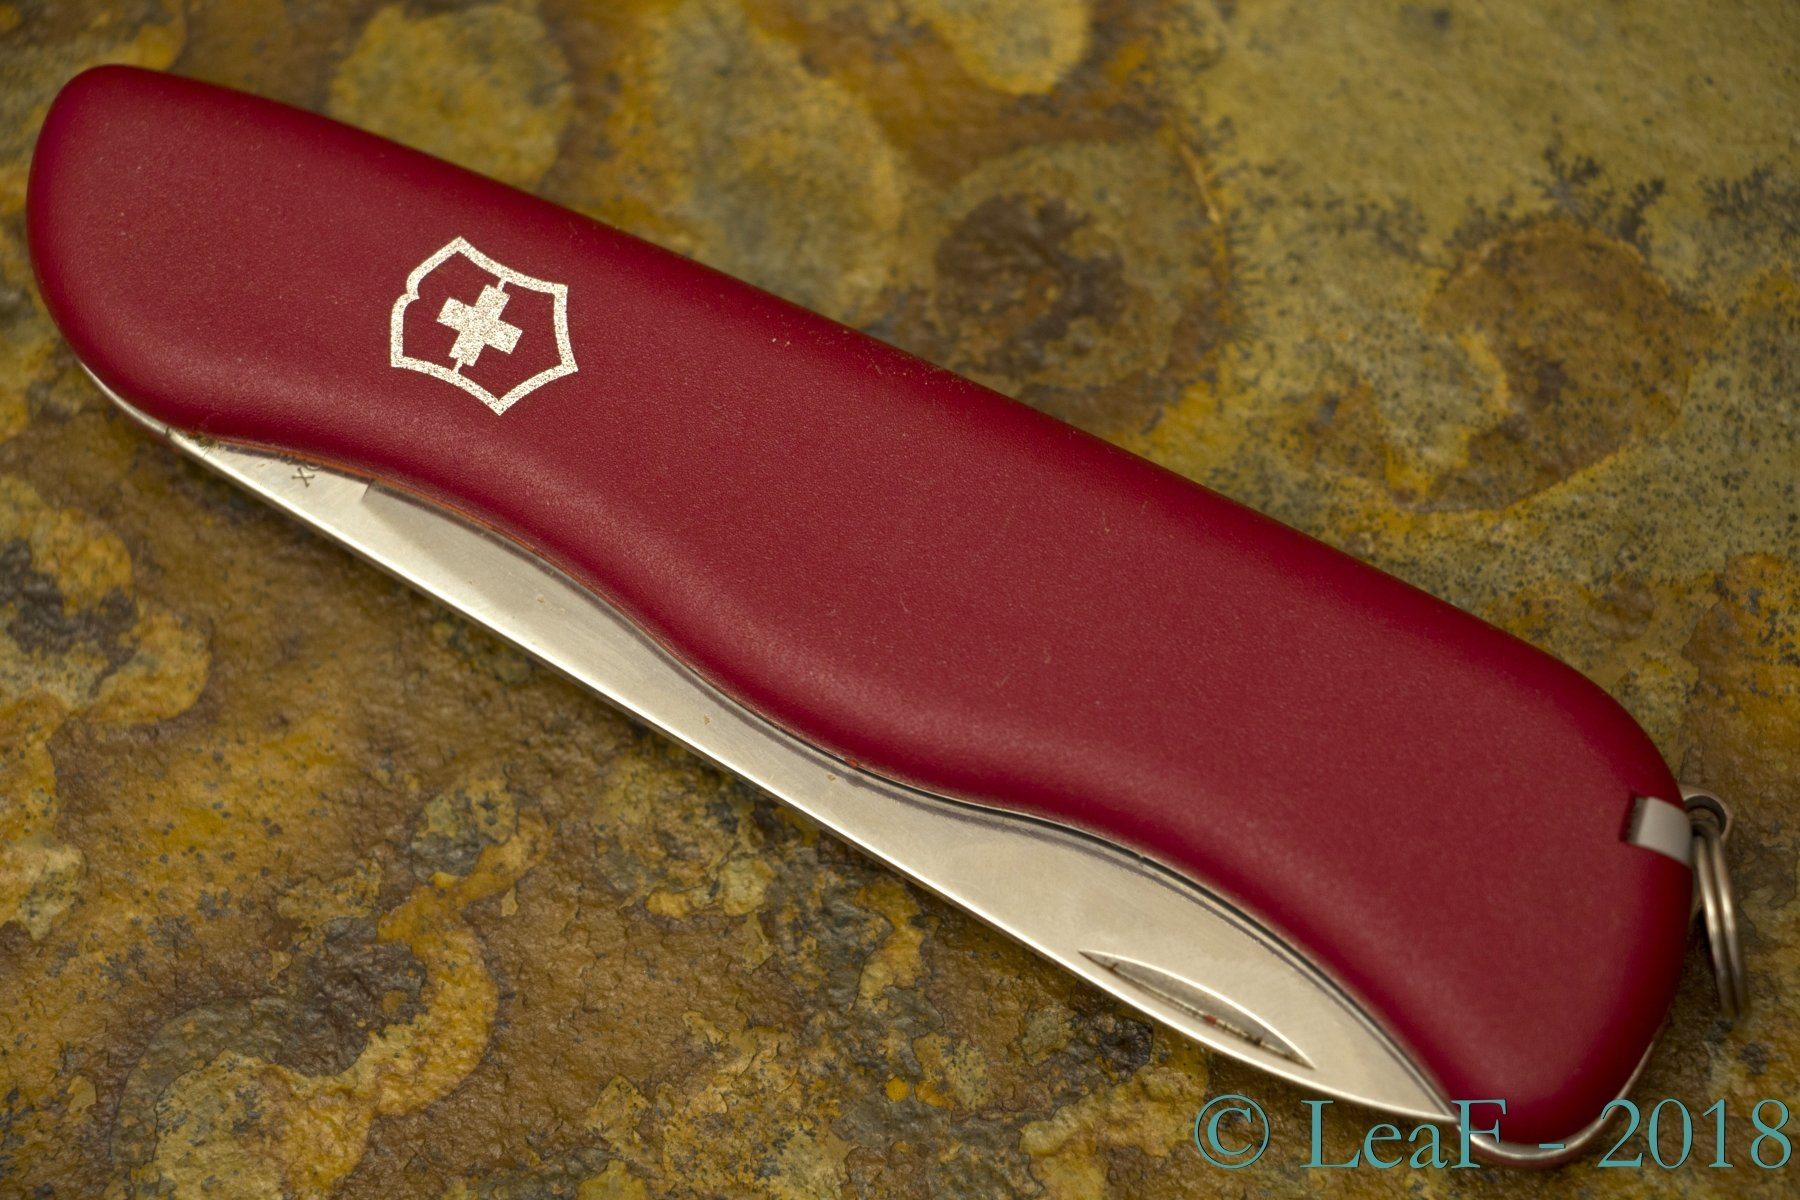 246 Alpineer Leaf S Victorinox Knives Collection